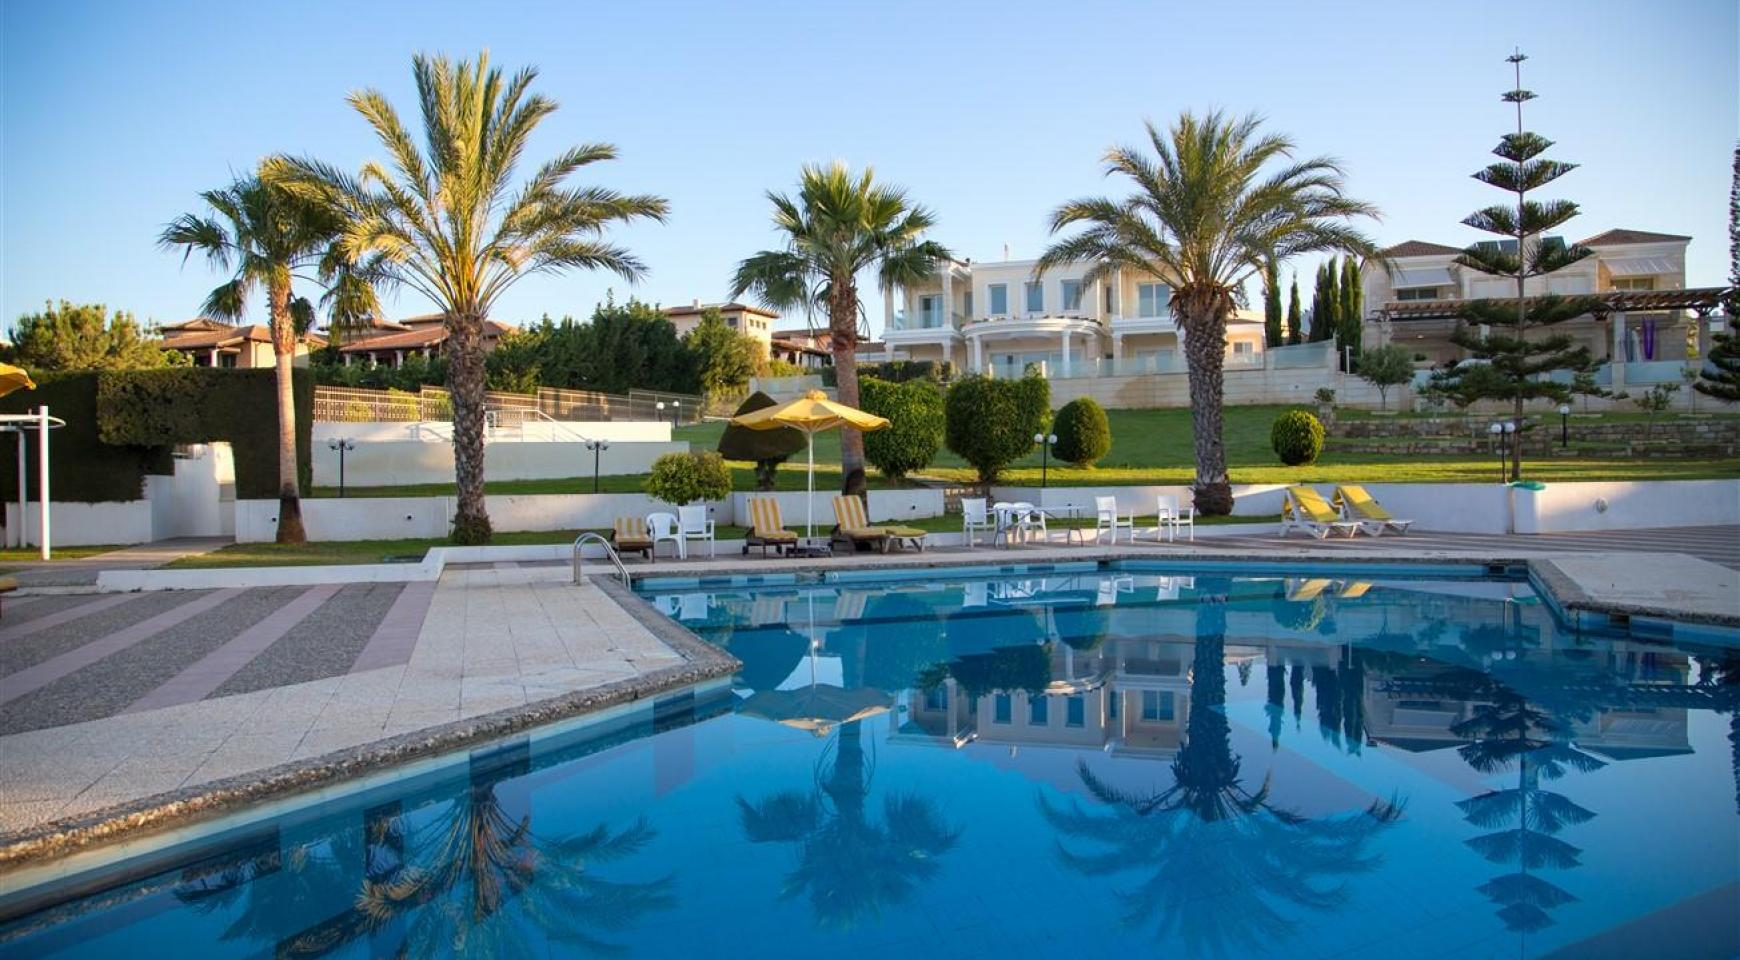 Luxury 3 Bedroom Apartment in Thera Complex by the Sea - 9